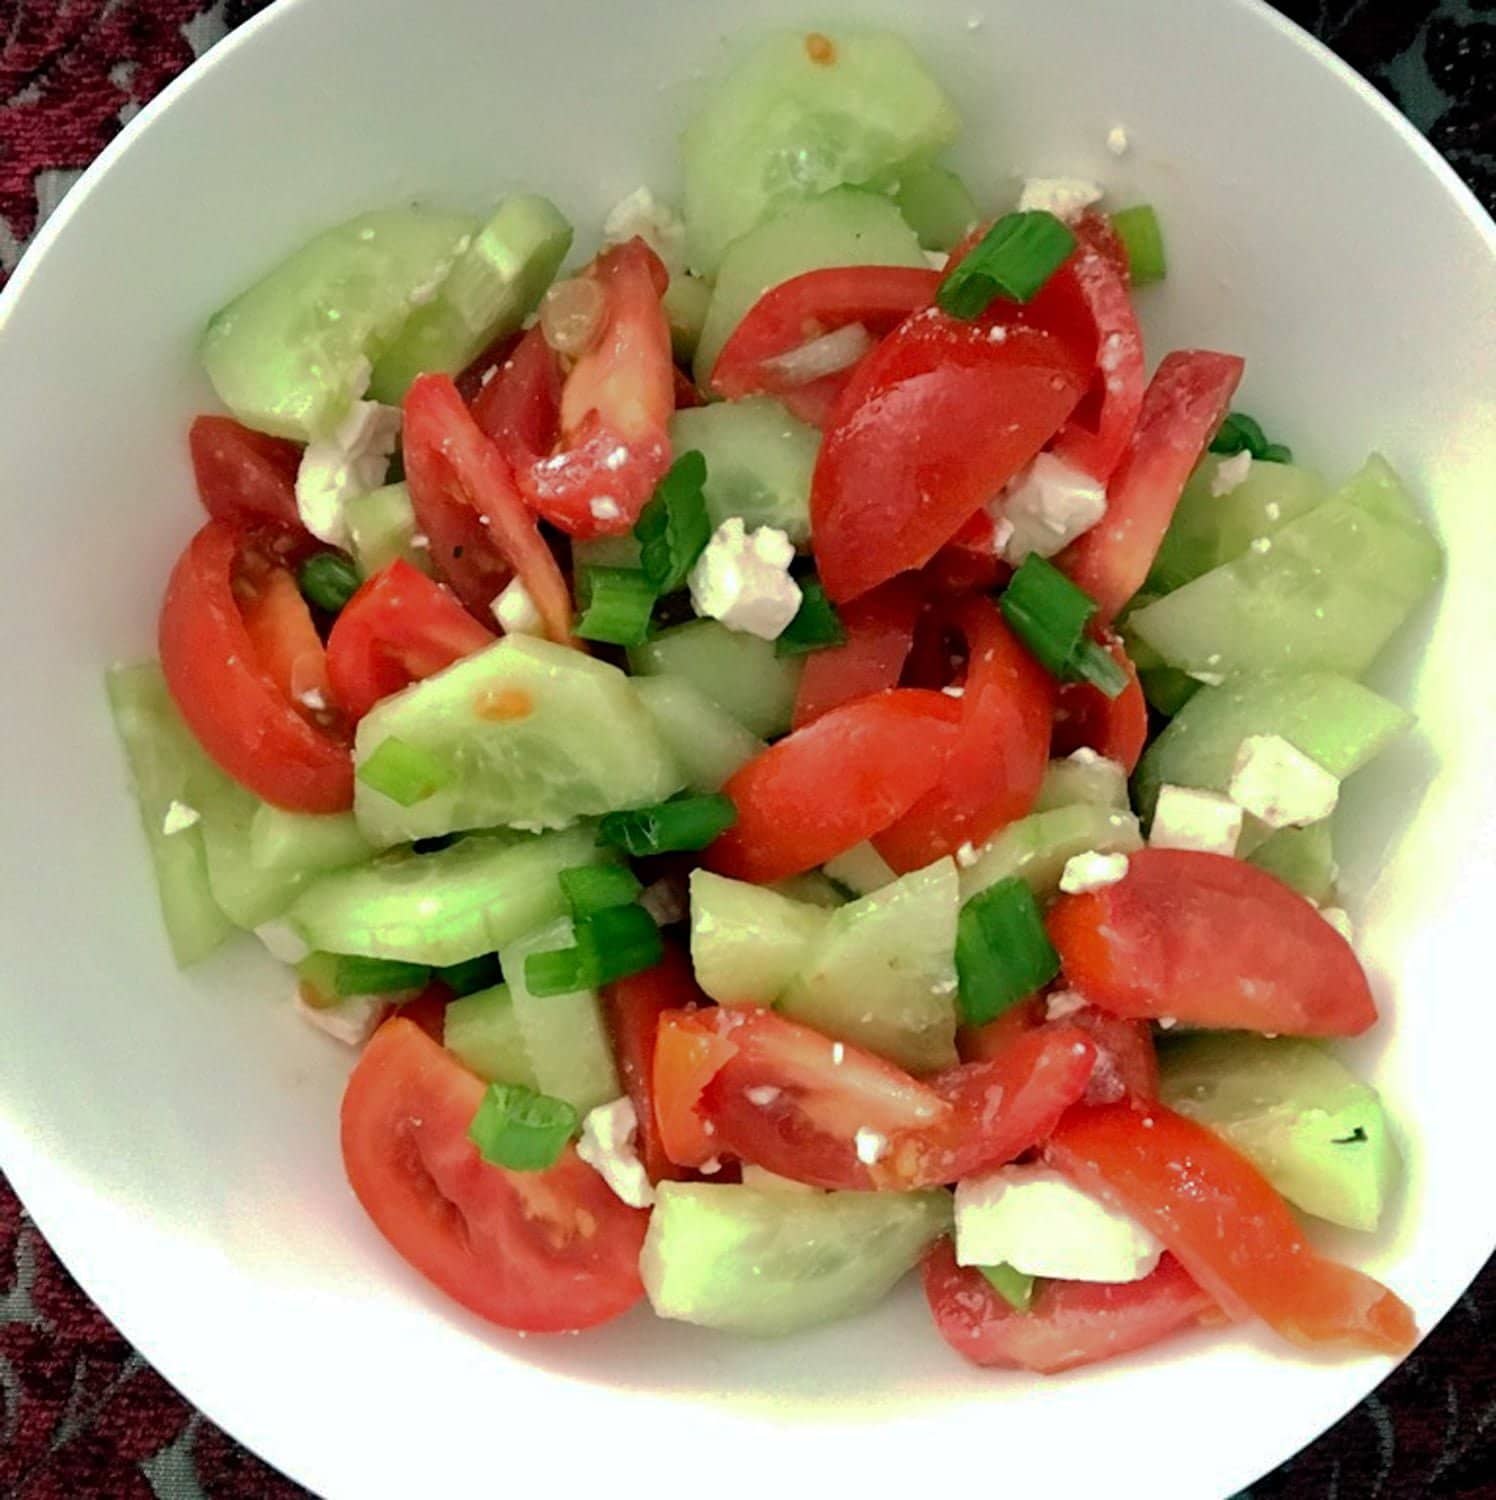 Tomato Cucumbers Feta Salad Recipe is a traditional authentic Romanian salad that can be made all year round. The salad doesn't use vinegar or lemon juice in the dressing, only sunflower oil, salt and pepper. Simple and delicious!